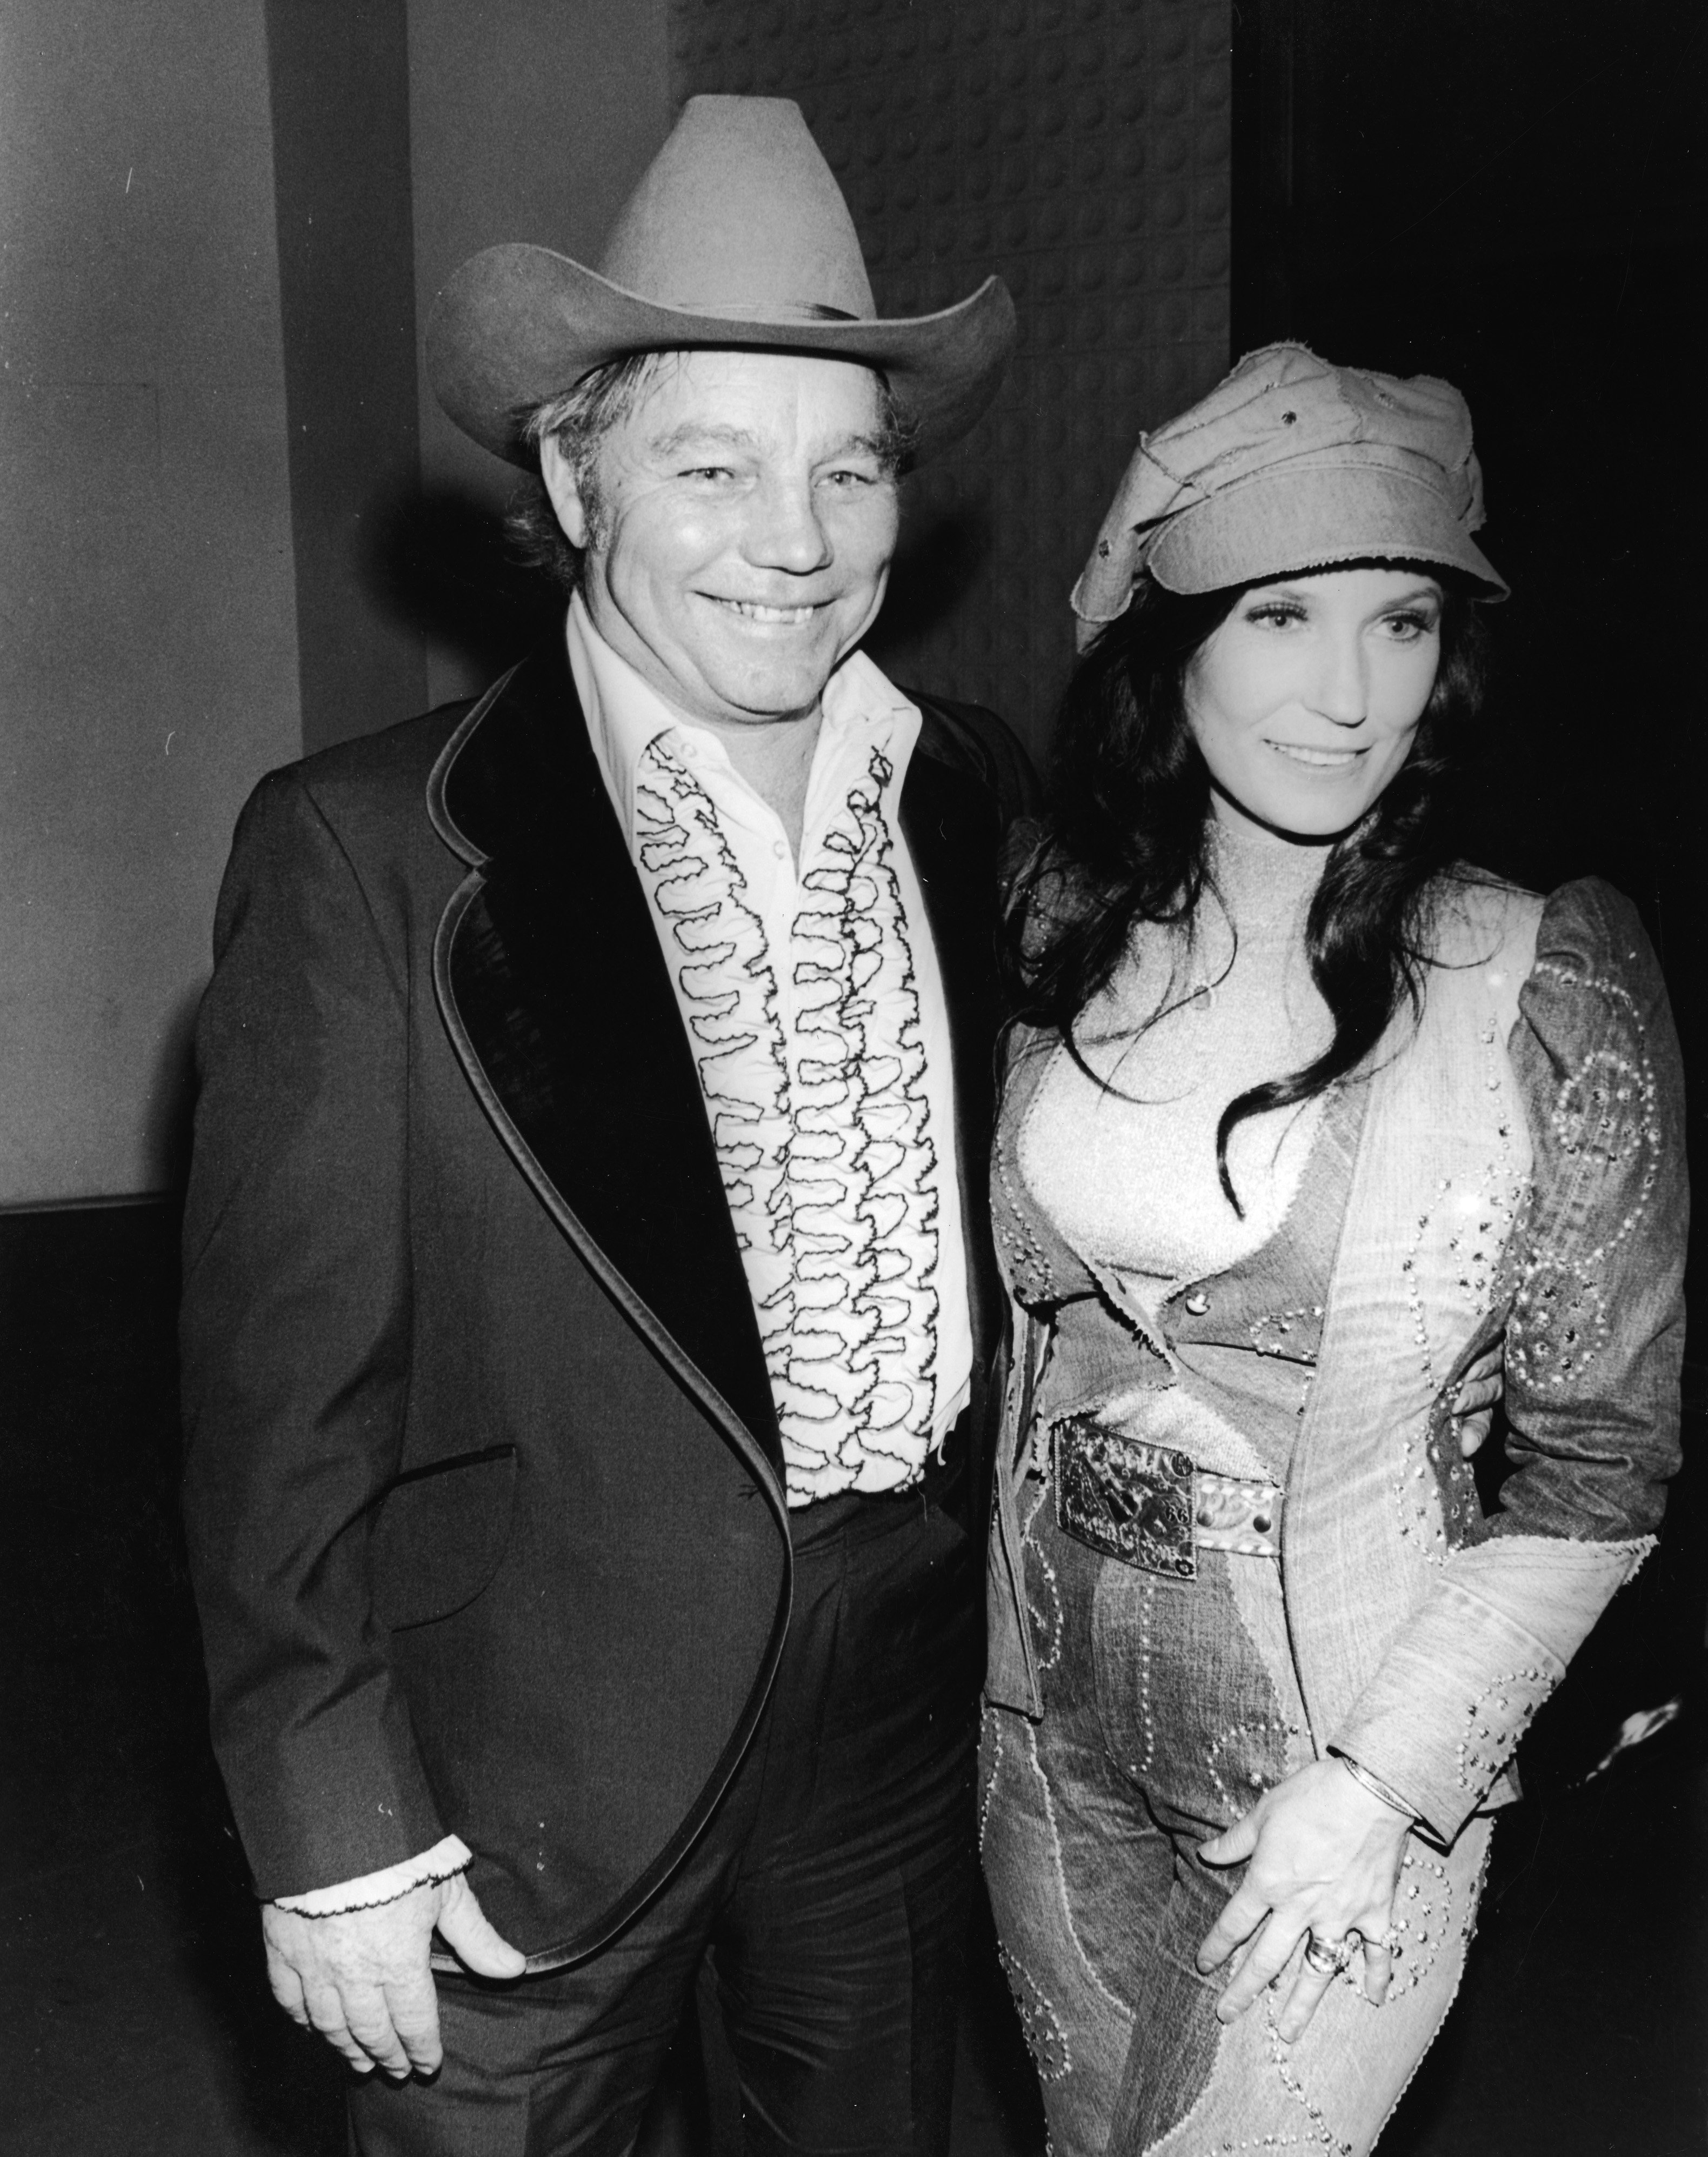 Loretta Lynn and her husband Oliver Lynn, Jr. (also known as Mooney) at the Country & Western Music Awards, Hollywood, California, February 27, 1975. | Source: Getty Images.